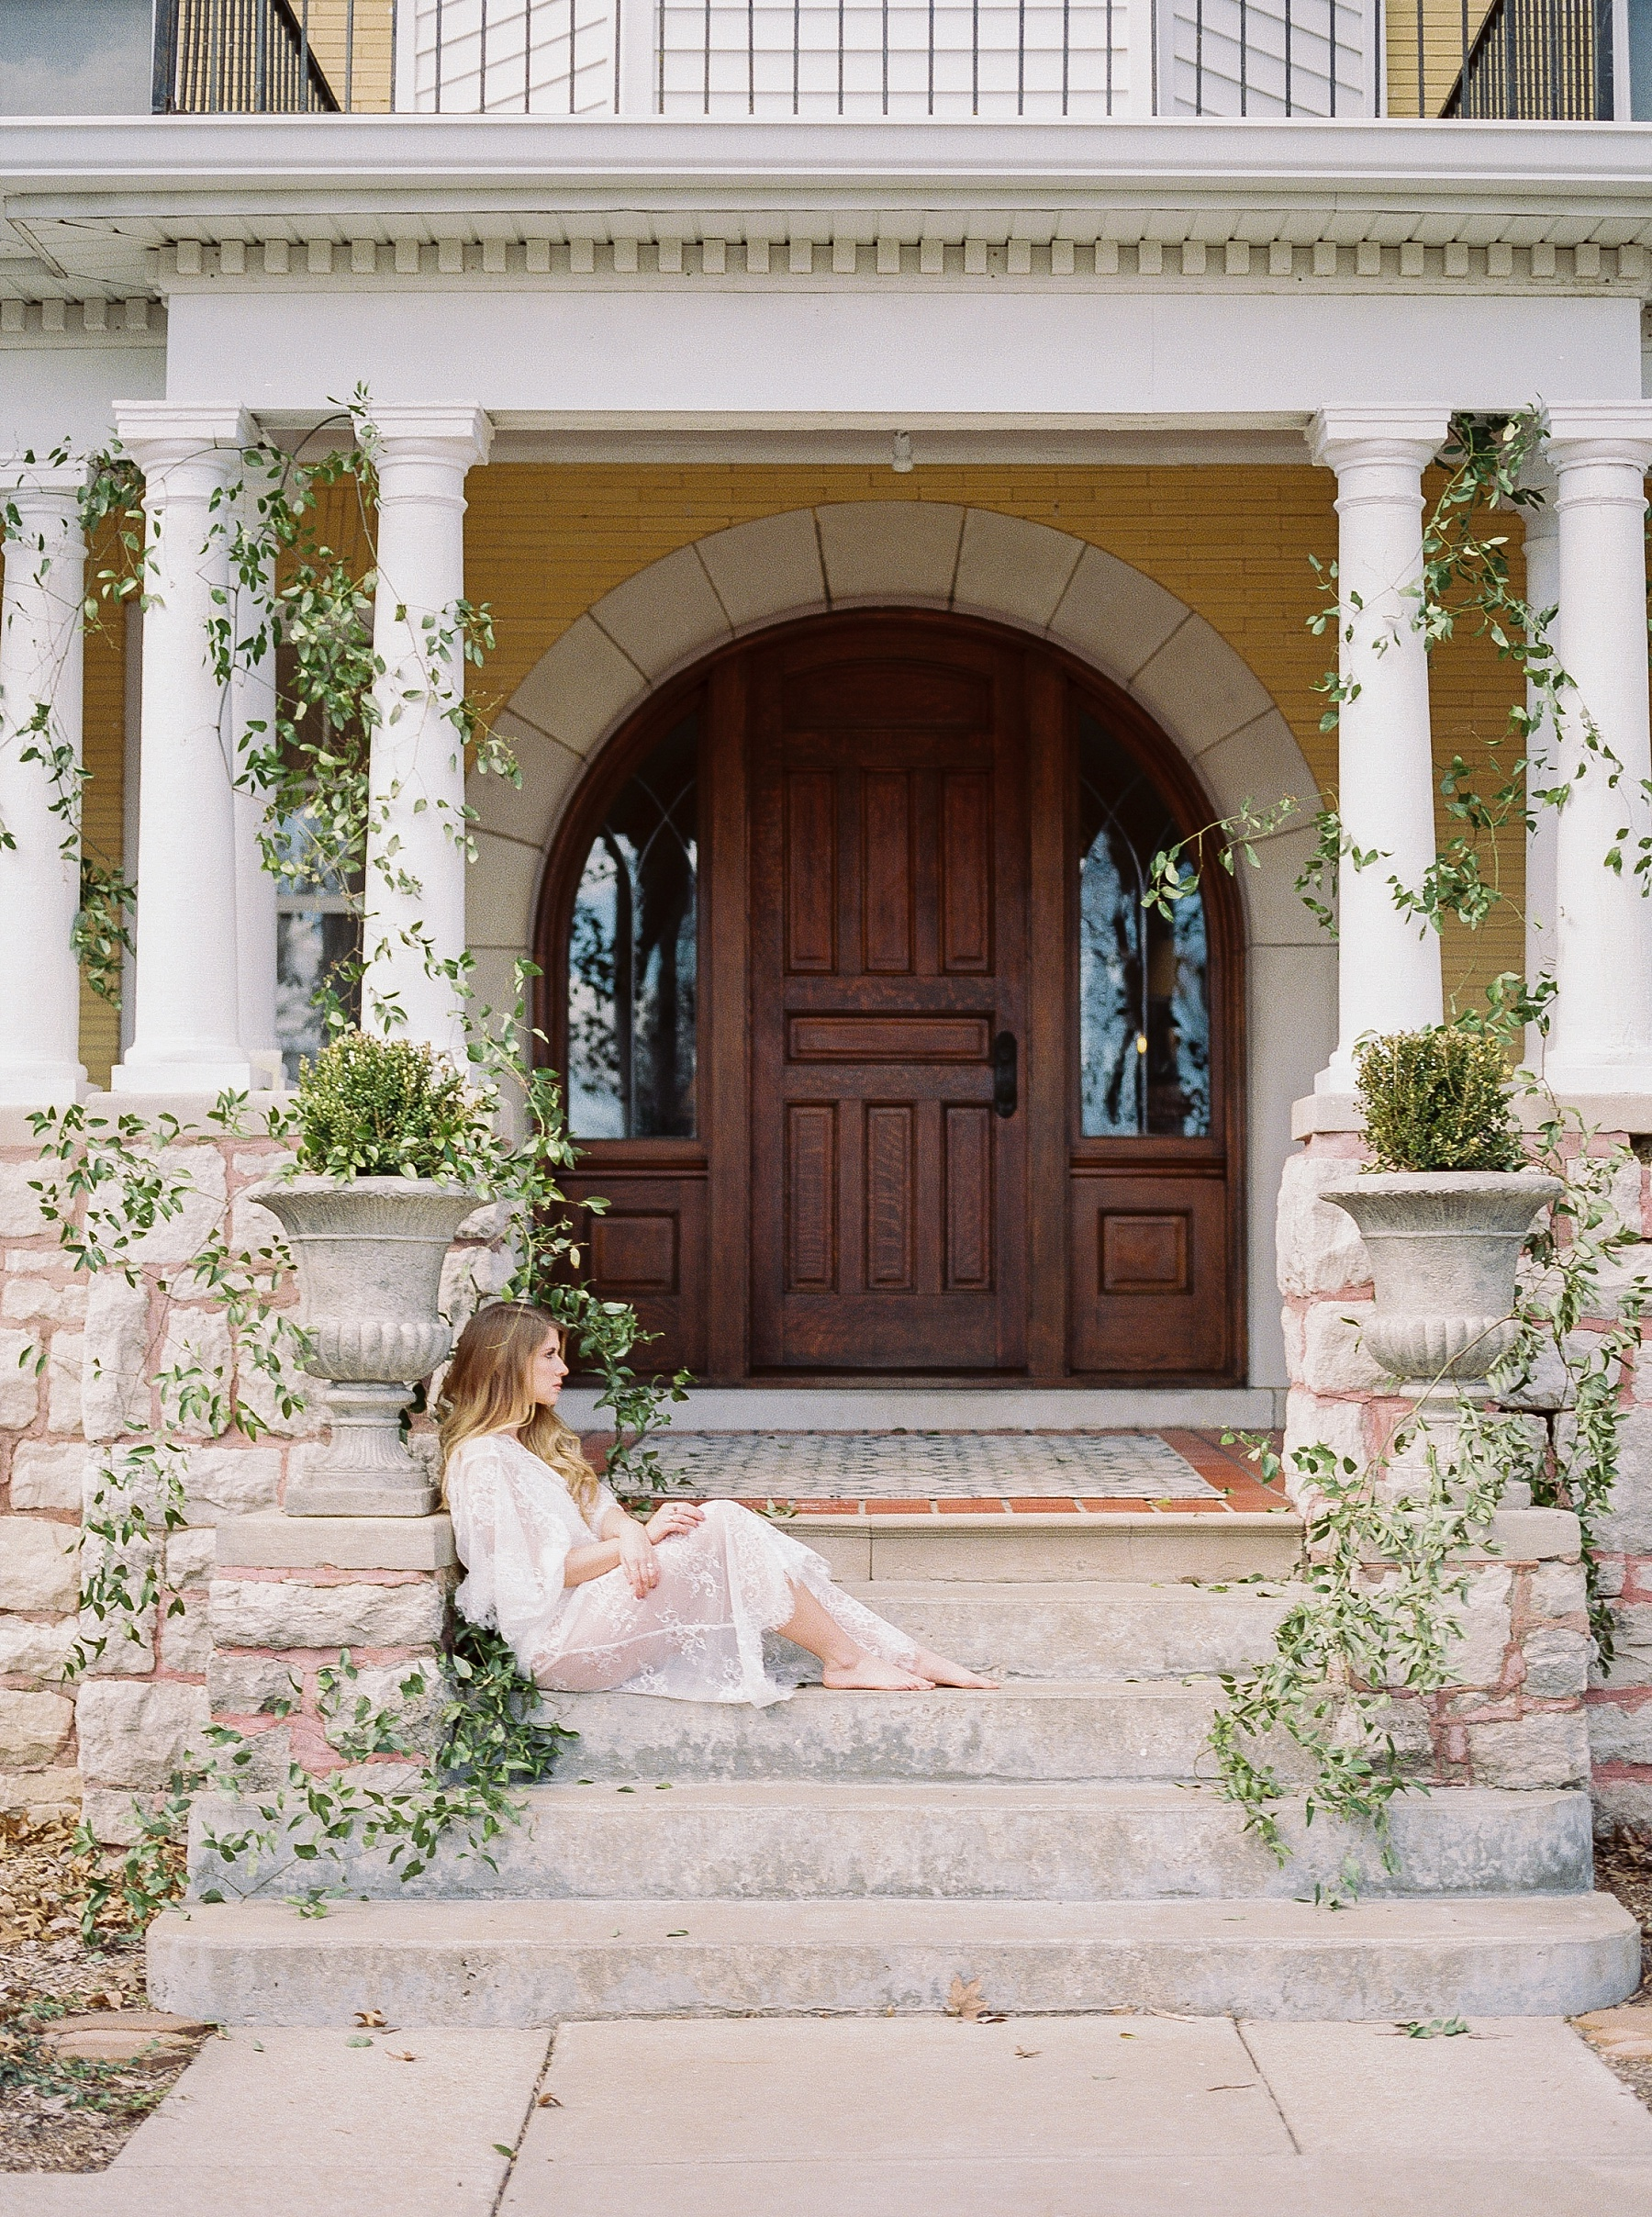 Natural, Intimate, and Organic Bridal Session on Steps of Century Old Bed and Breakfast by Kelsi Kliethermes Photography Best Missouri and Maui Wedding Photographer_0017.jpg